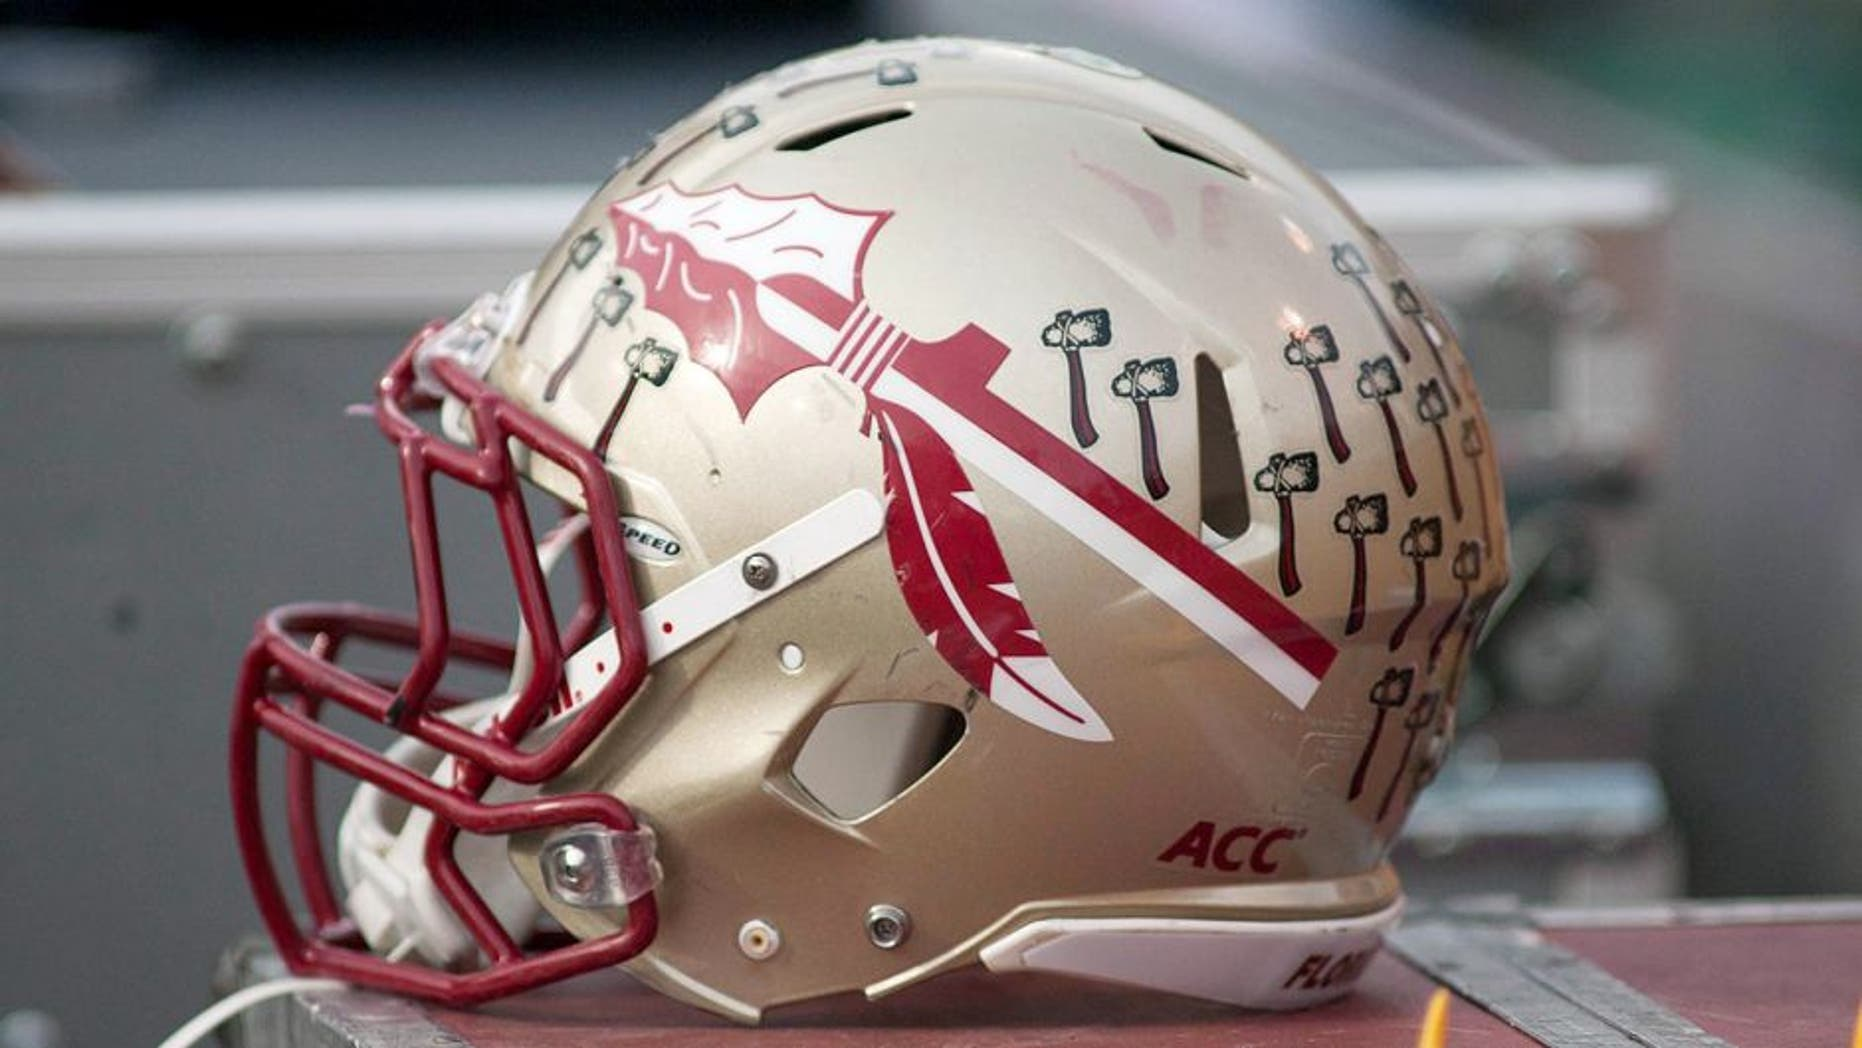 Nov 9, 2013; Winston-Salem, NC, USA; A Florida State Seminoles helmet lays on the sidelines during the game against the Wake Forest Demon Deacons at BB&T Field. Florida State defeated Wake Forest 59-3. Mandatory Credit: Jeremy Brevard-USA TODAY Sports